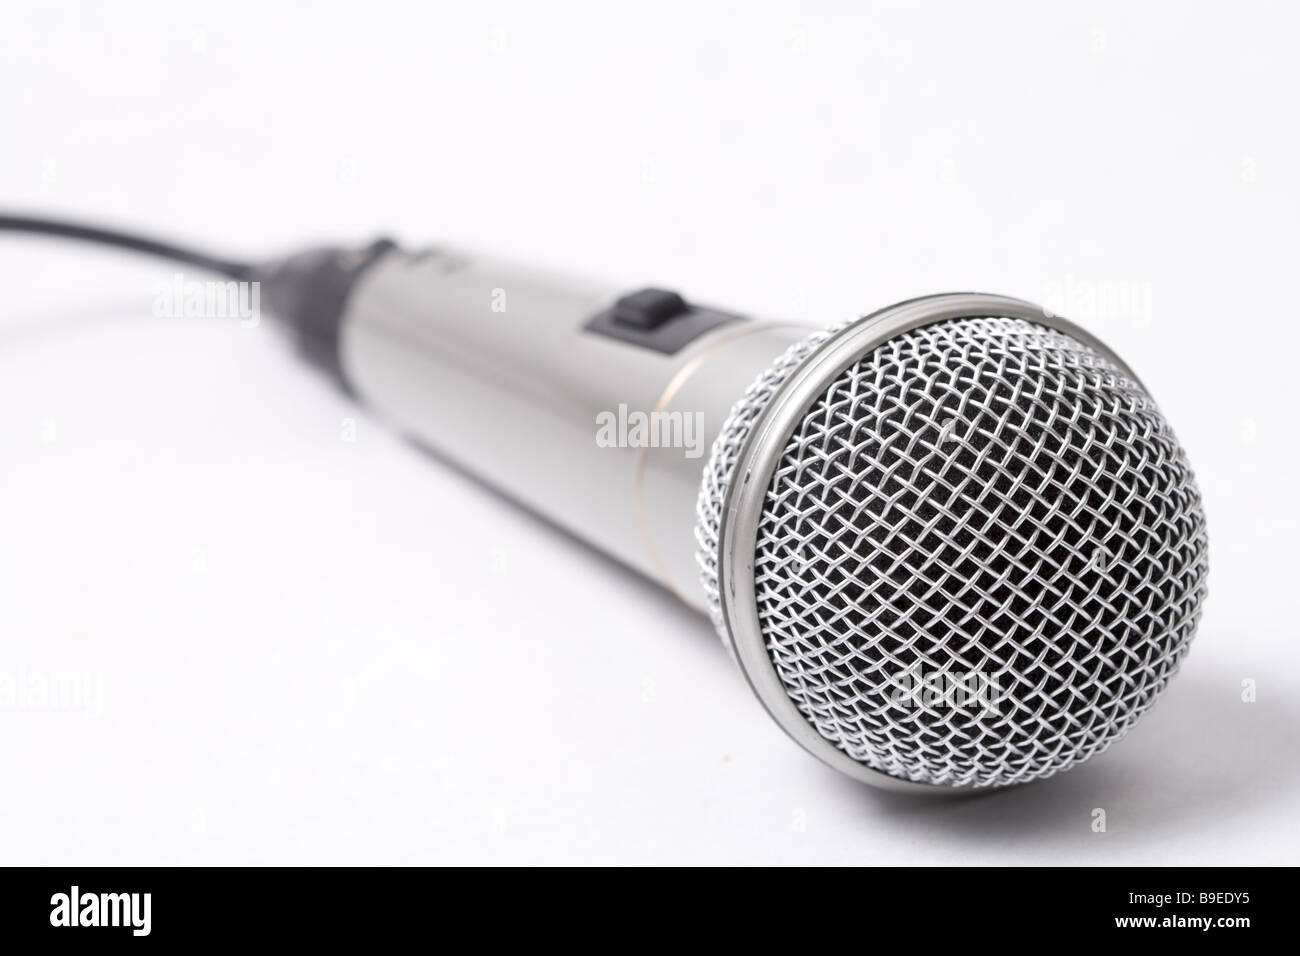 Closeup on metallic microphone over white background - Stock Image